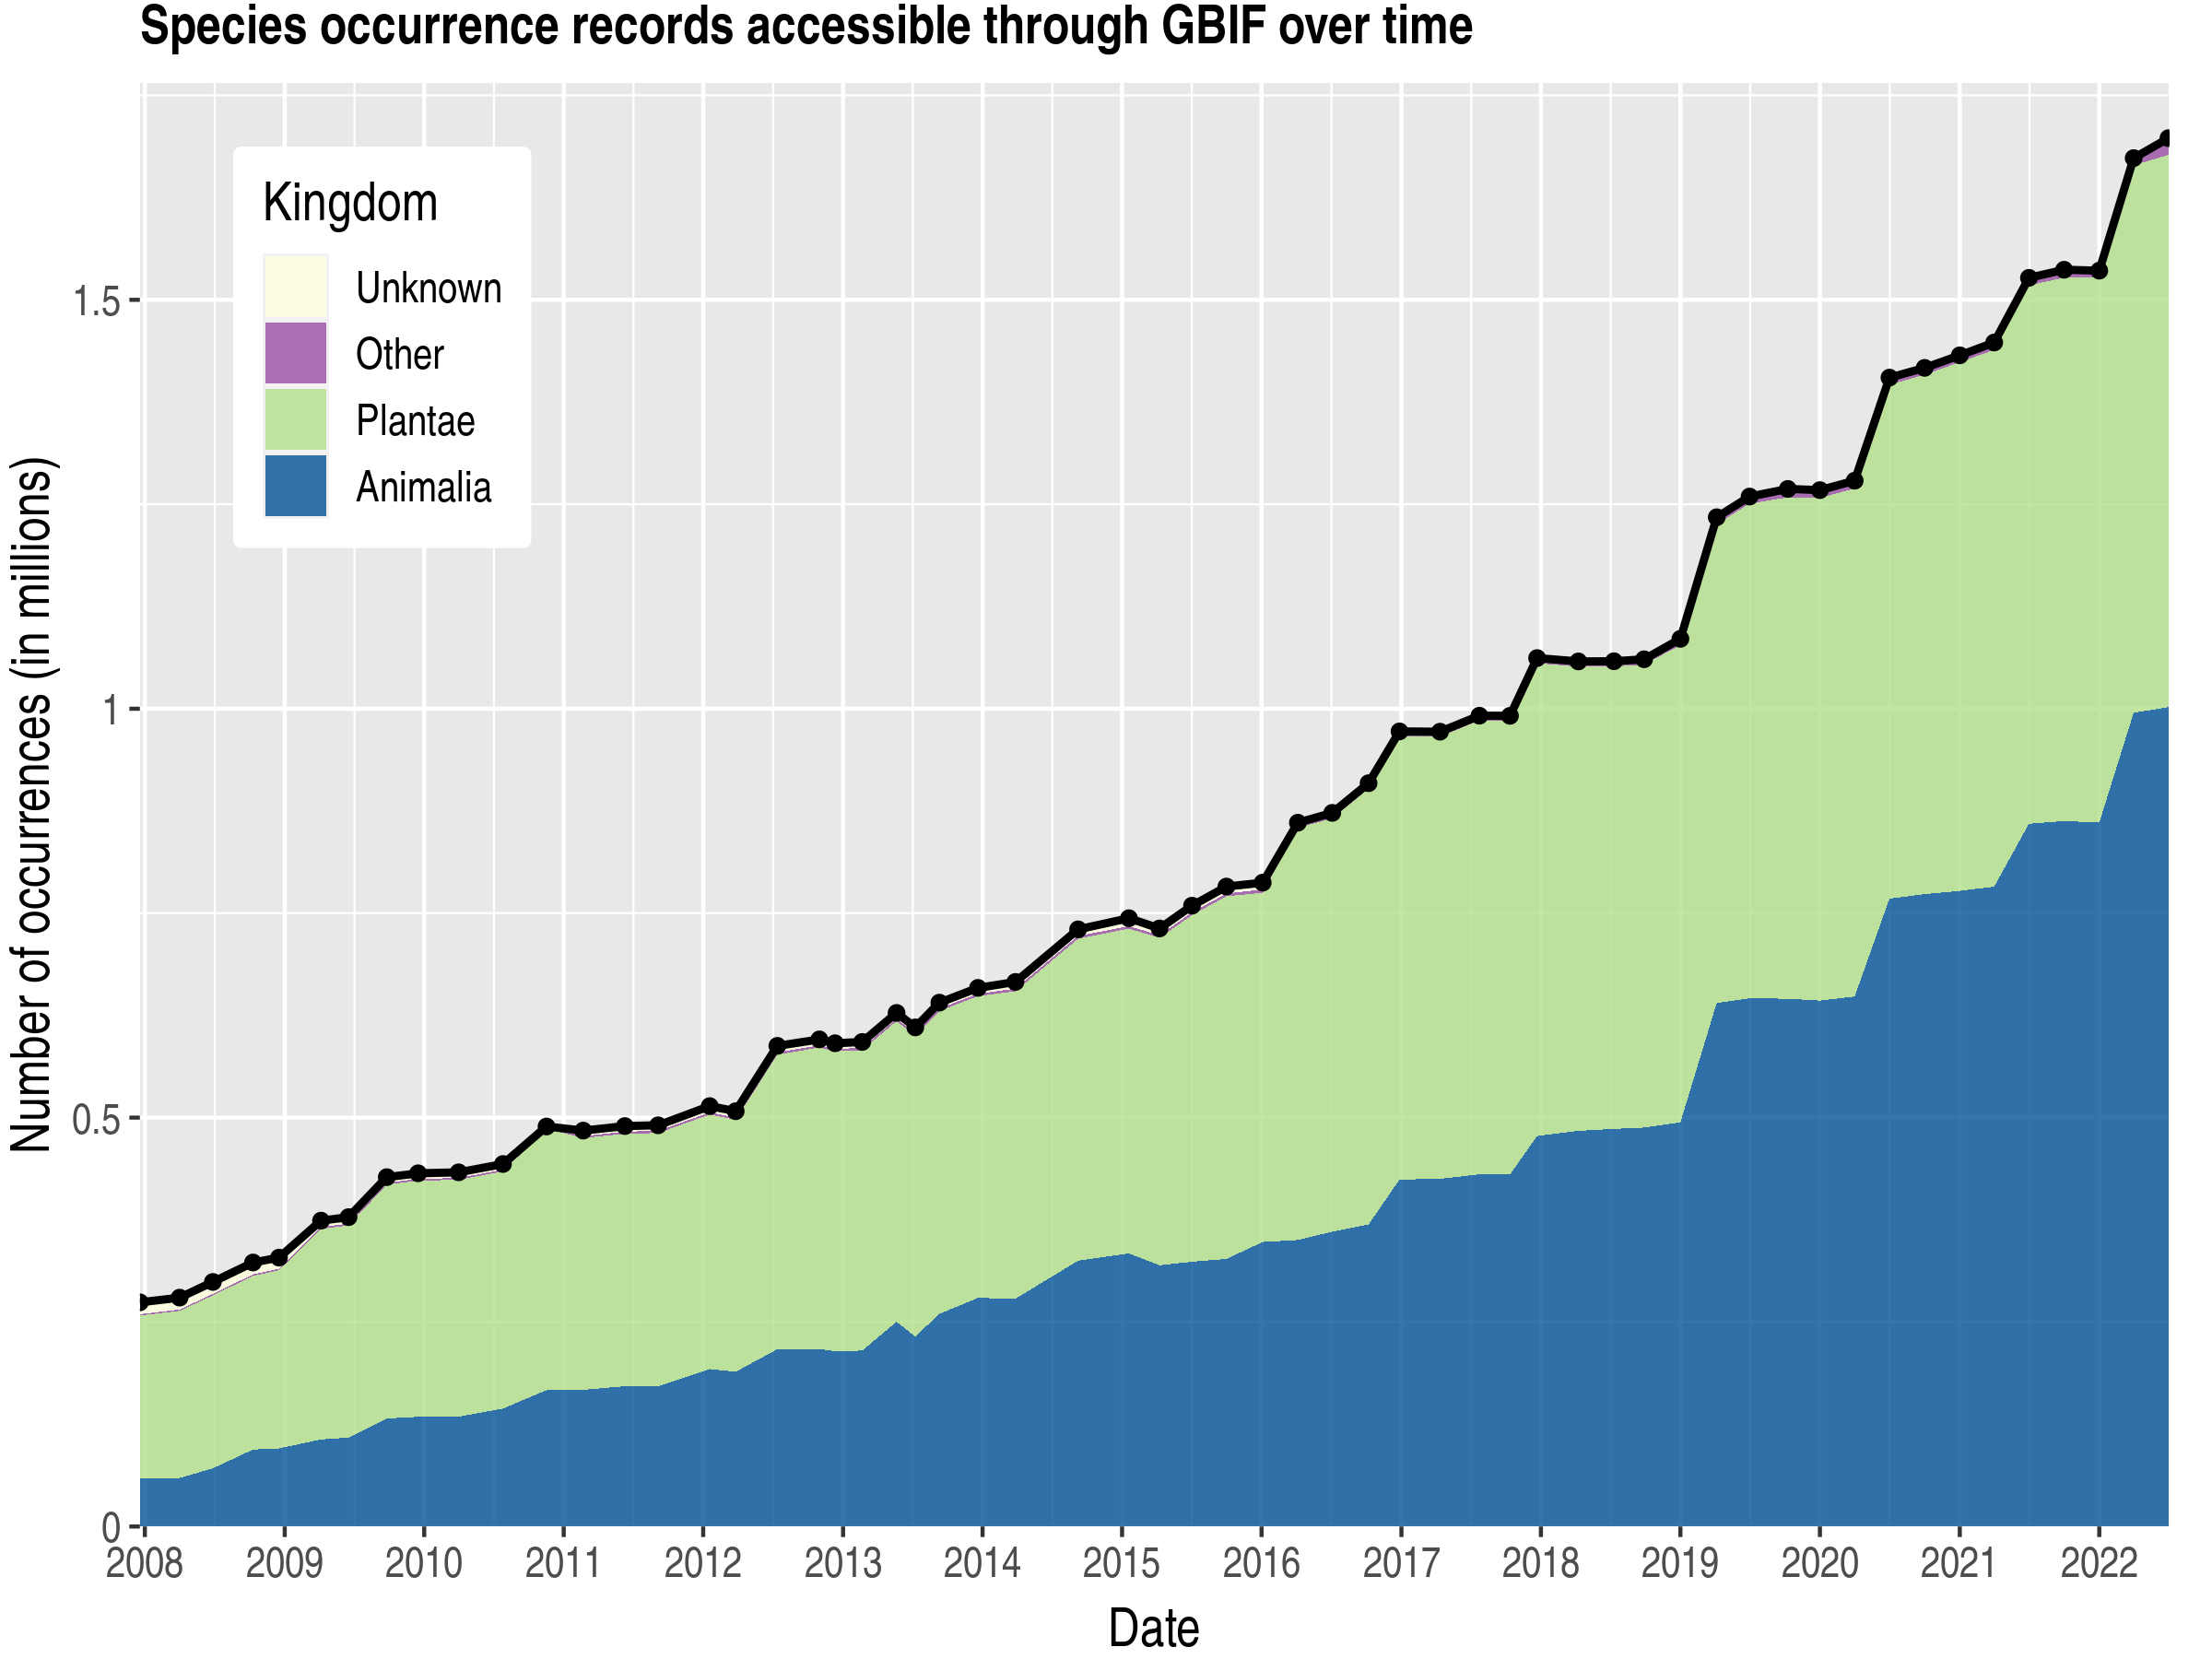 Data trend of records by kingdom about Bolivia, Plurinational State of